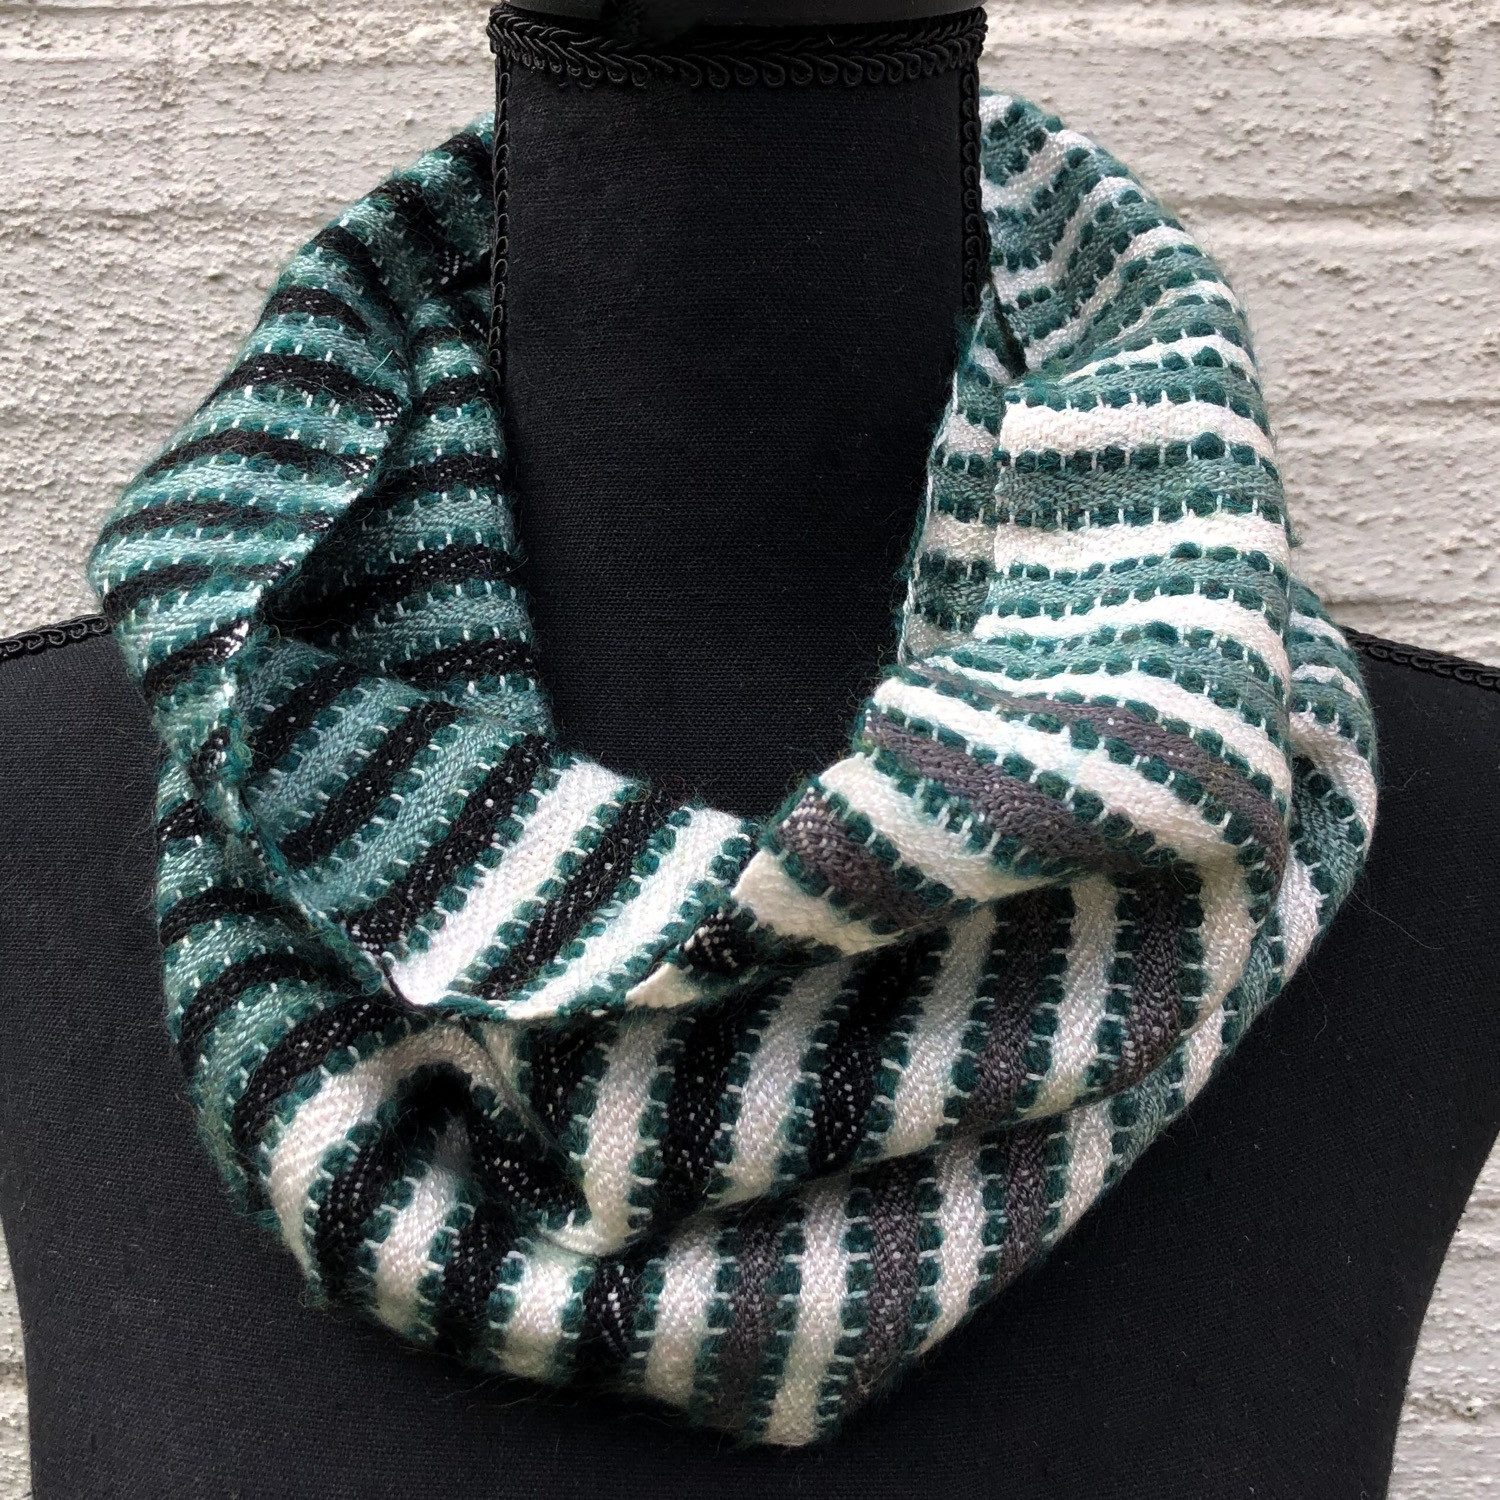 Weave a Cowl